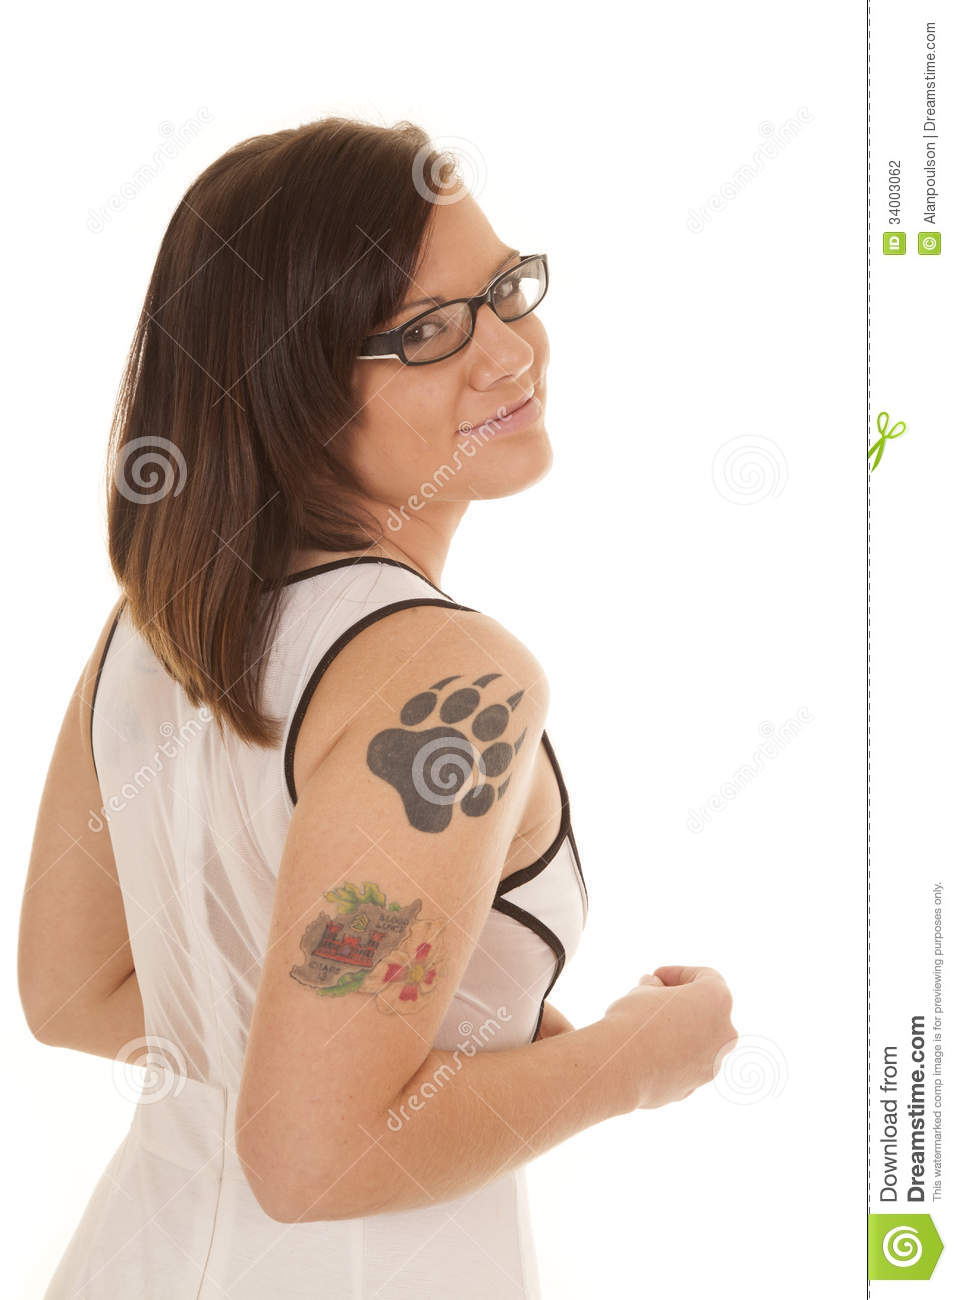 Woman white dress claw tattoo side glasses stock for Smile more tattoo